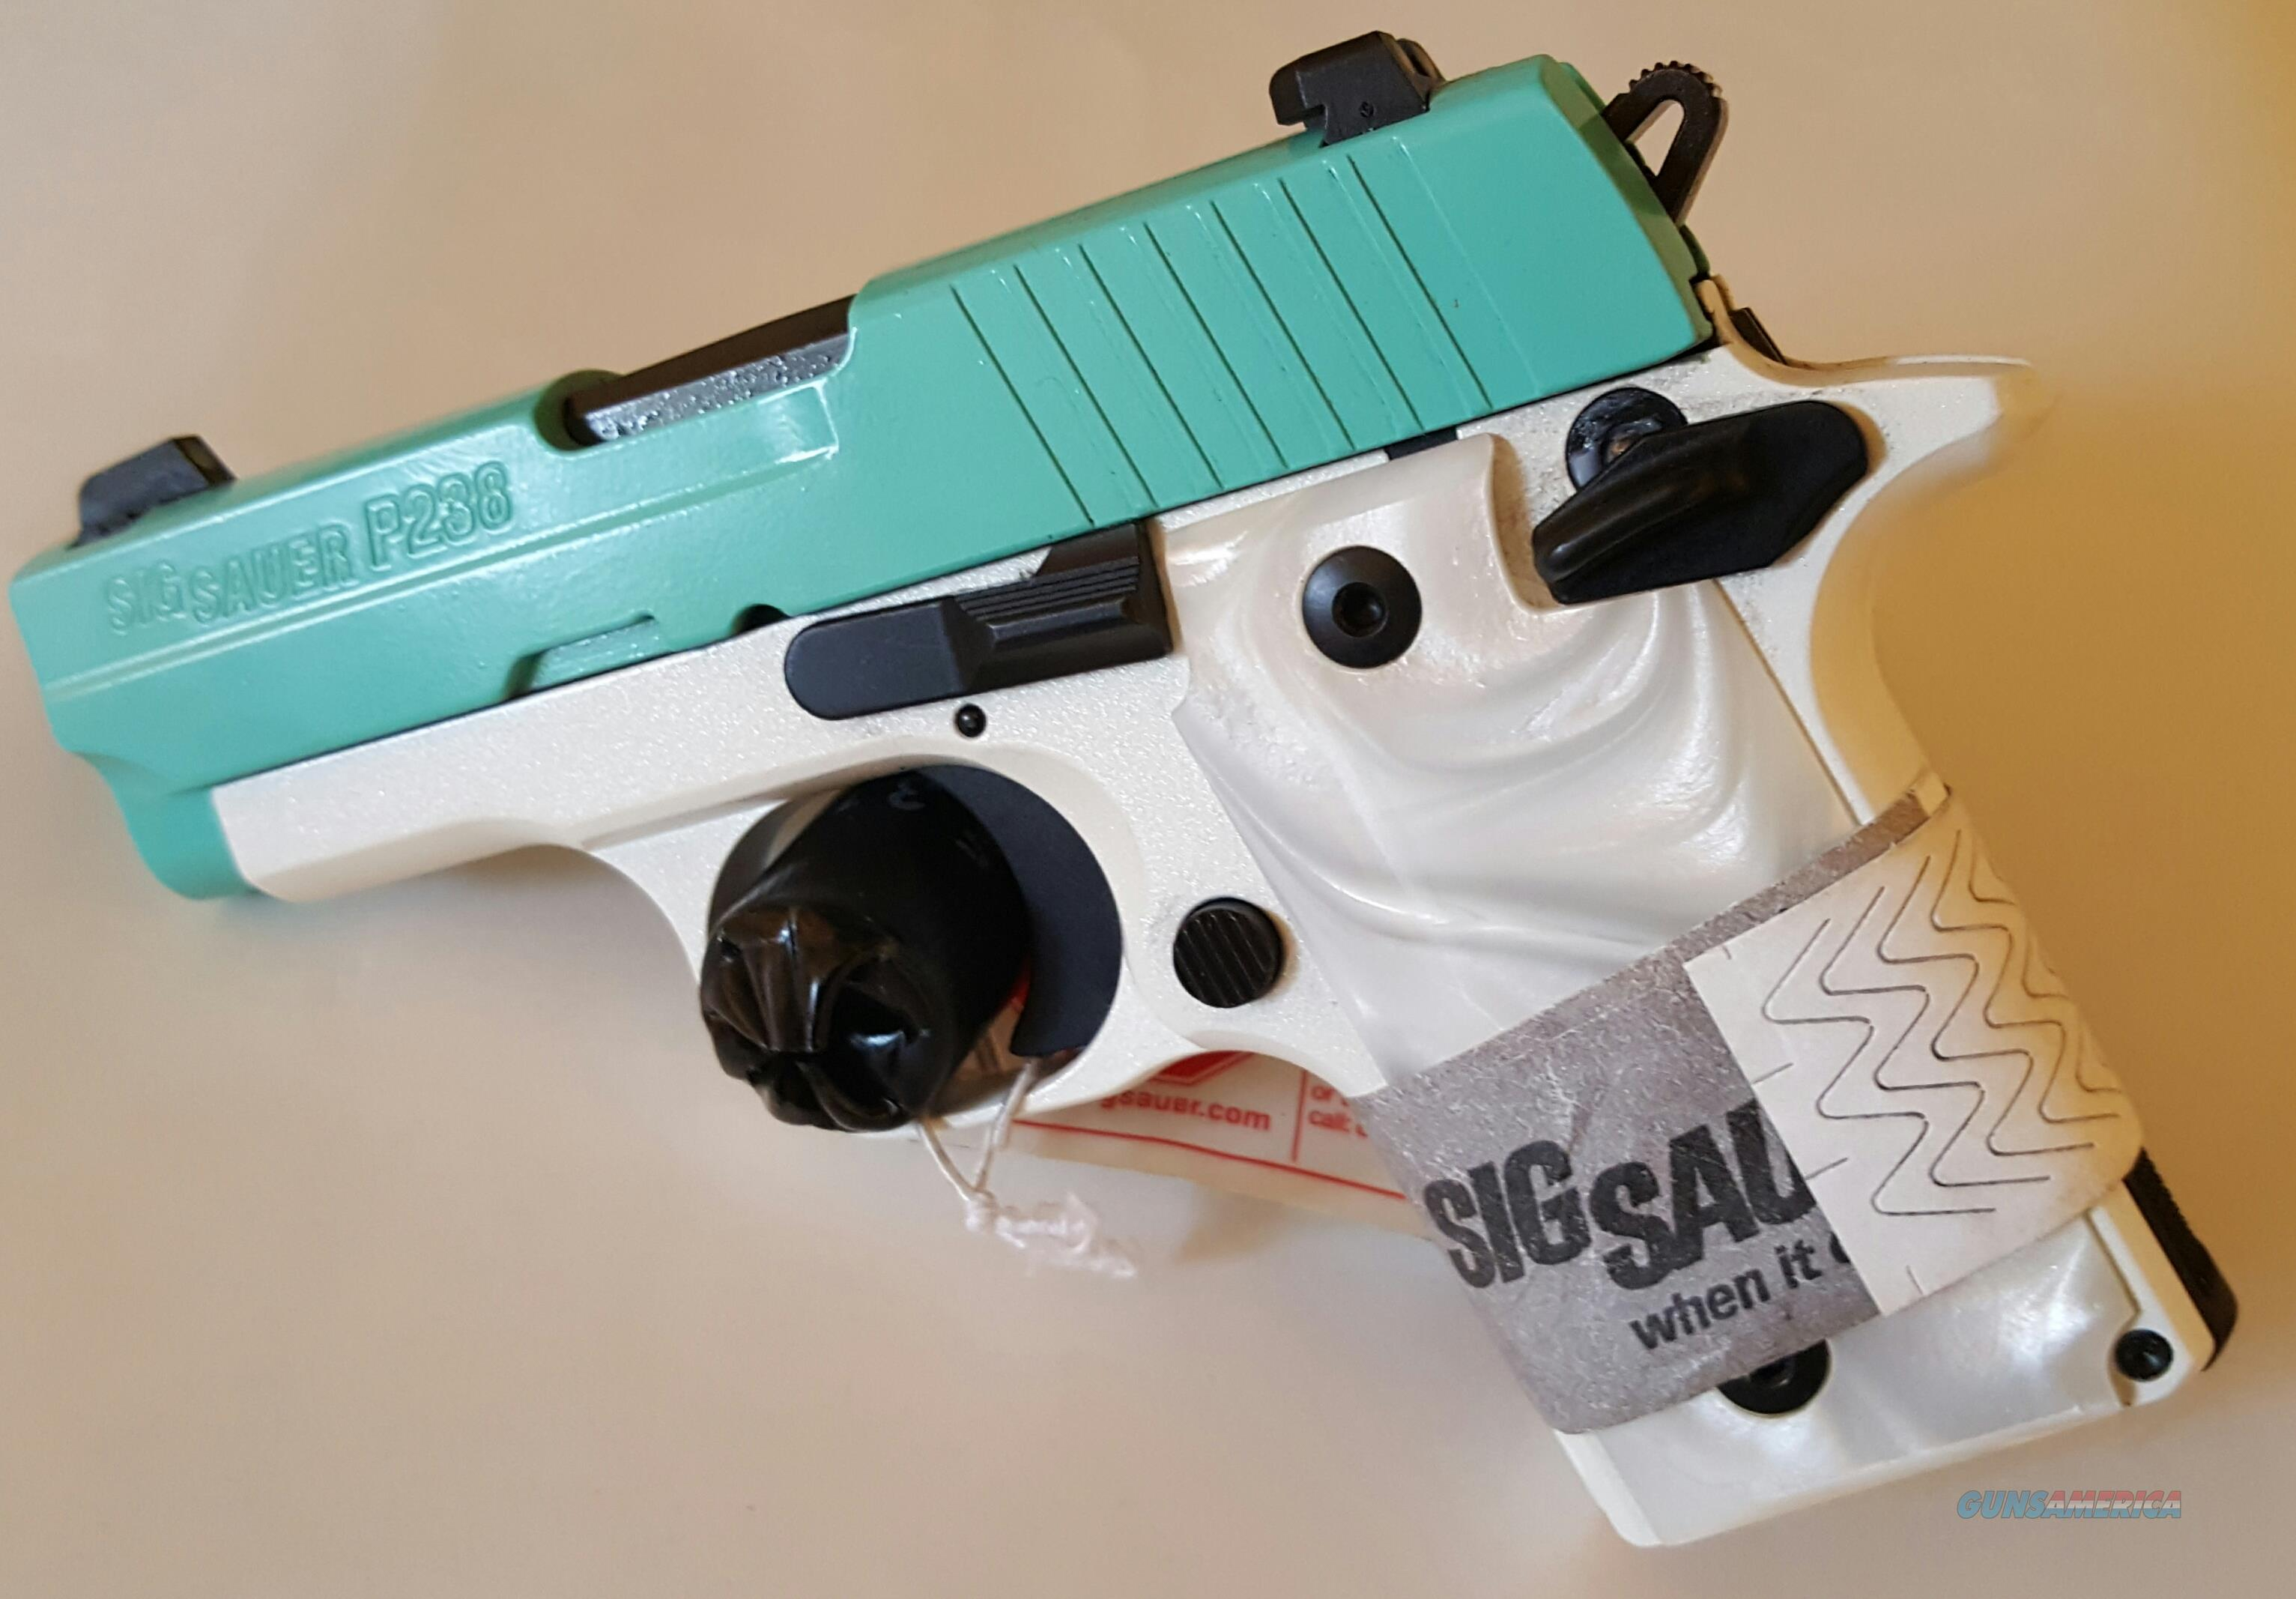 Beautiful Sig Sauer P238 in Robins Egg Blue SHOT Show Special Edition - NIB  Guns > Pistols > Sig - Sauer/Sigarms Pistols > P238